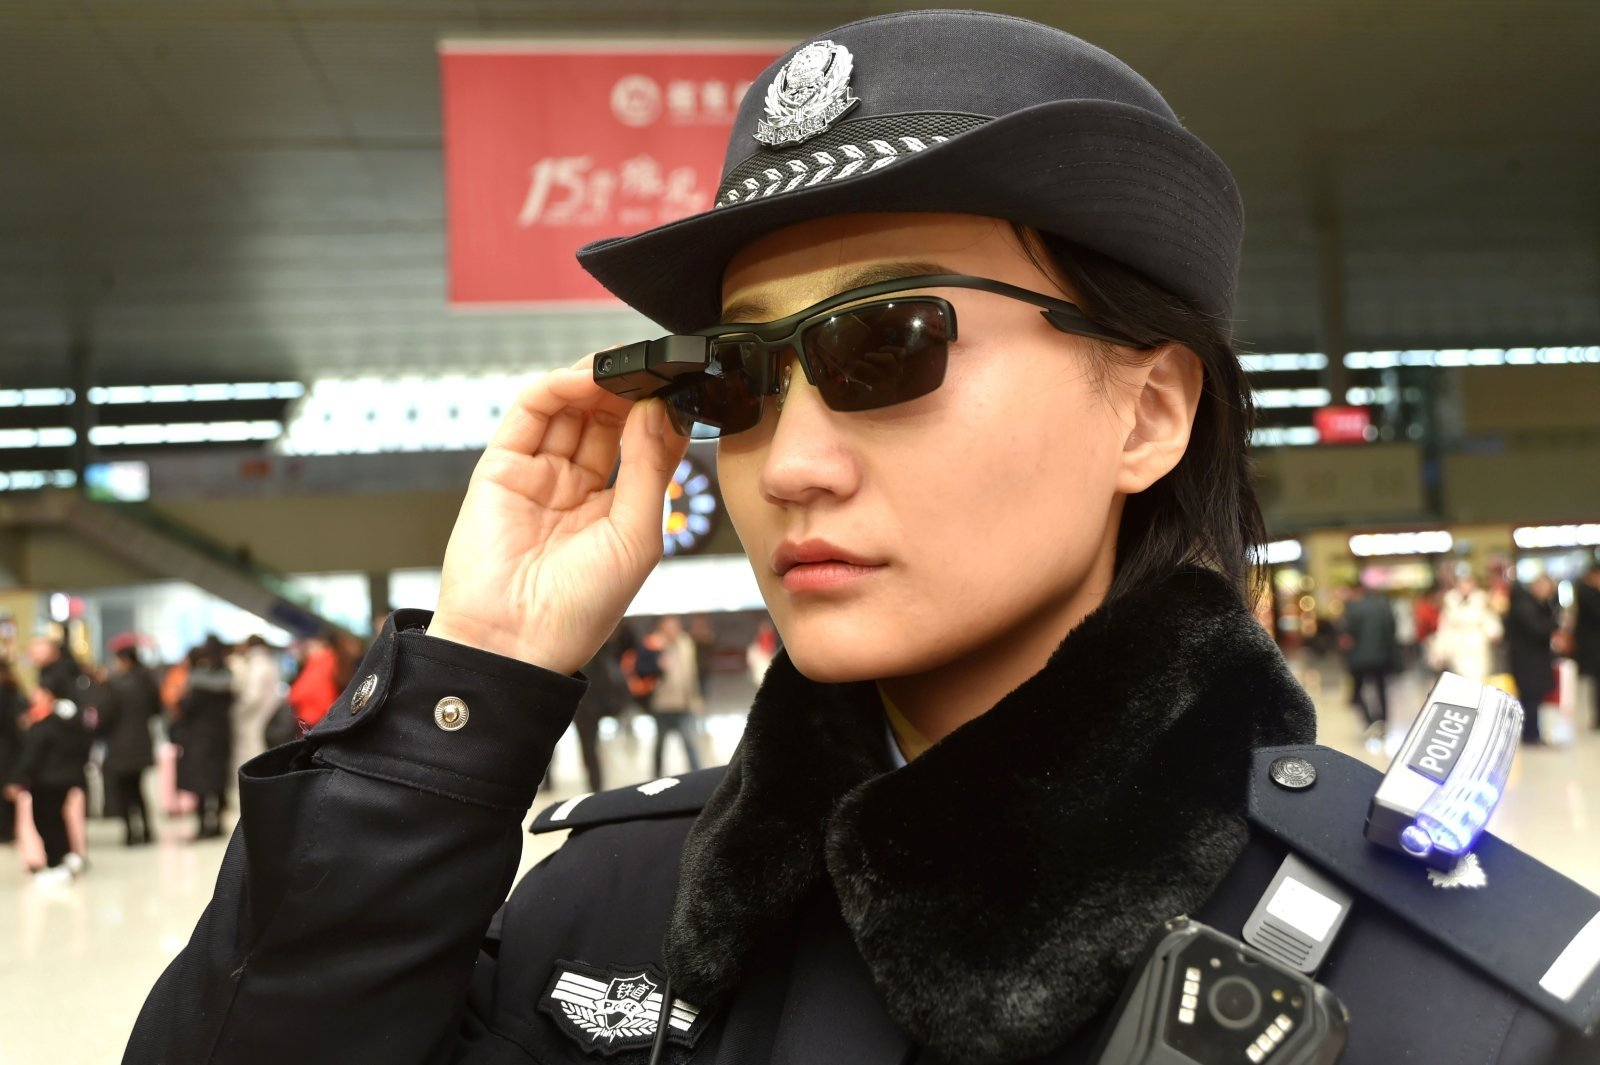 An officer using facial recognition glasses in Beijing